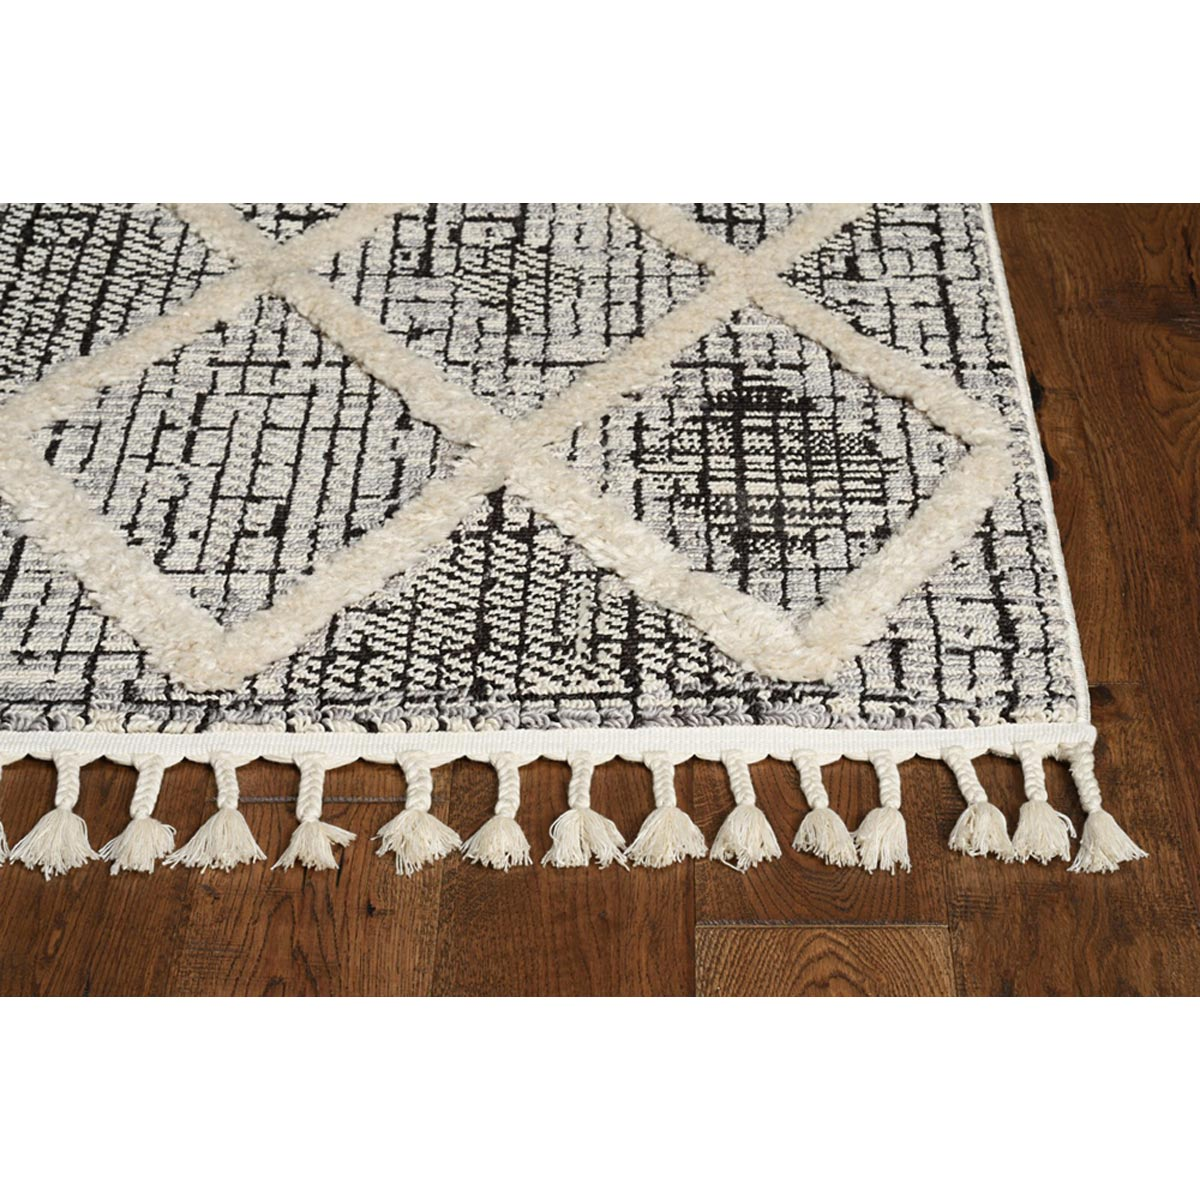 KAS 5 ft. 3 in. x 7 ft. 7 in. Willow Charcoal Diamonds Area Rug